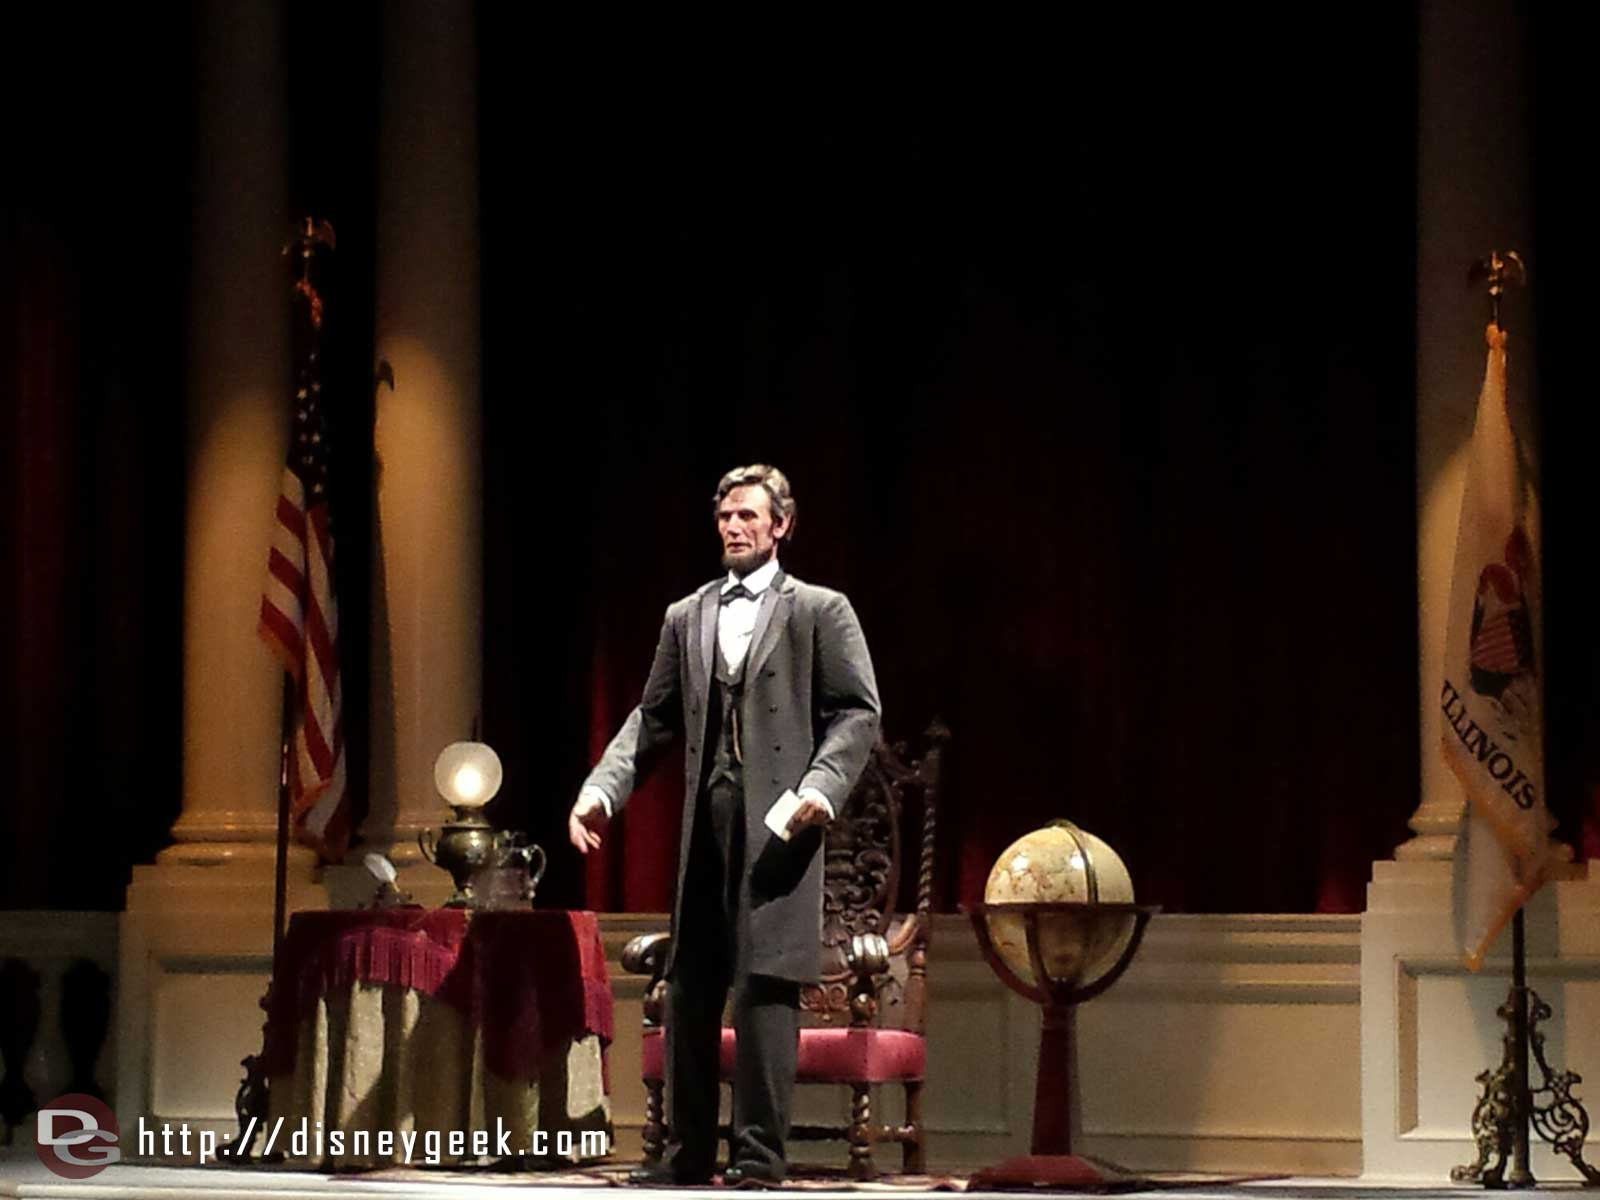 President Lincoln in Great Moments with Mr. Lincoln #Disneyland